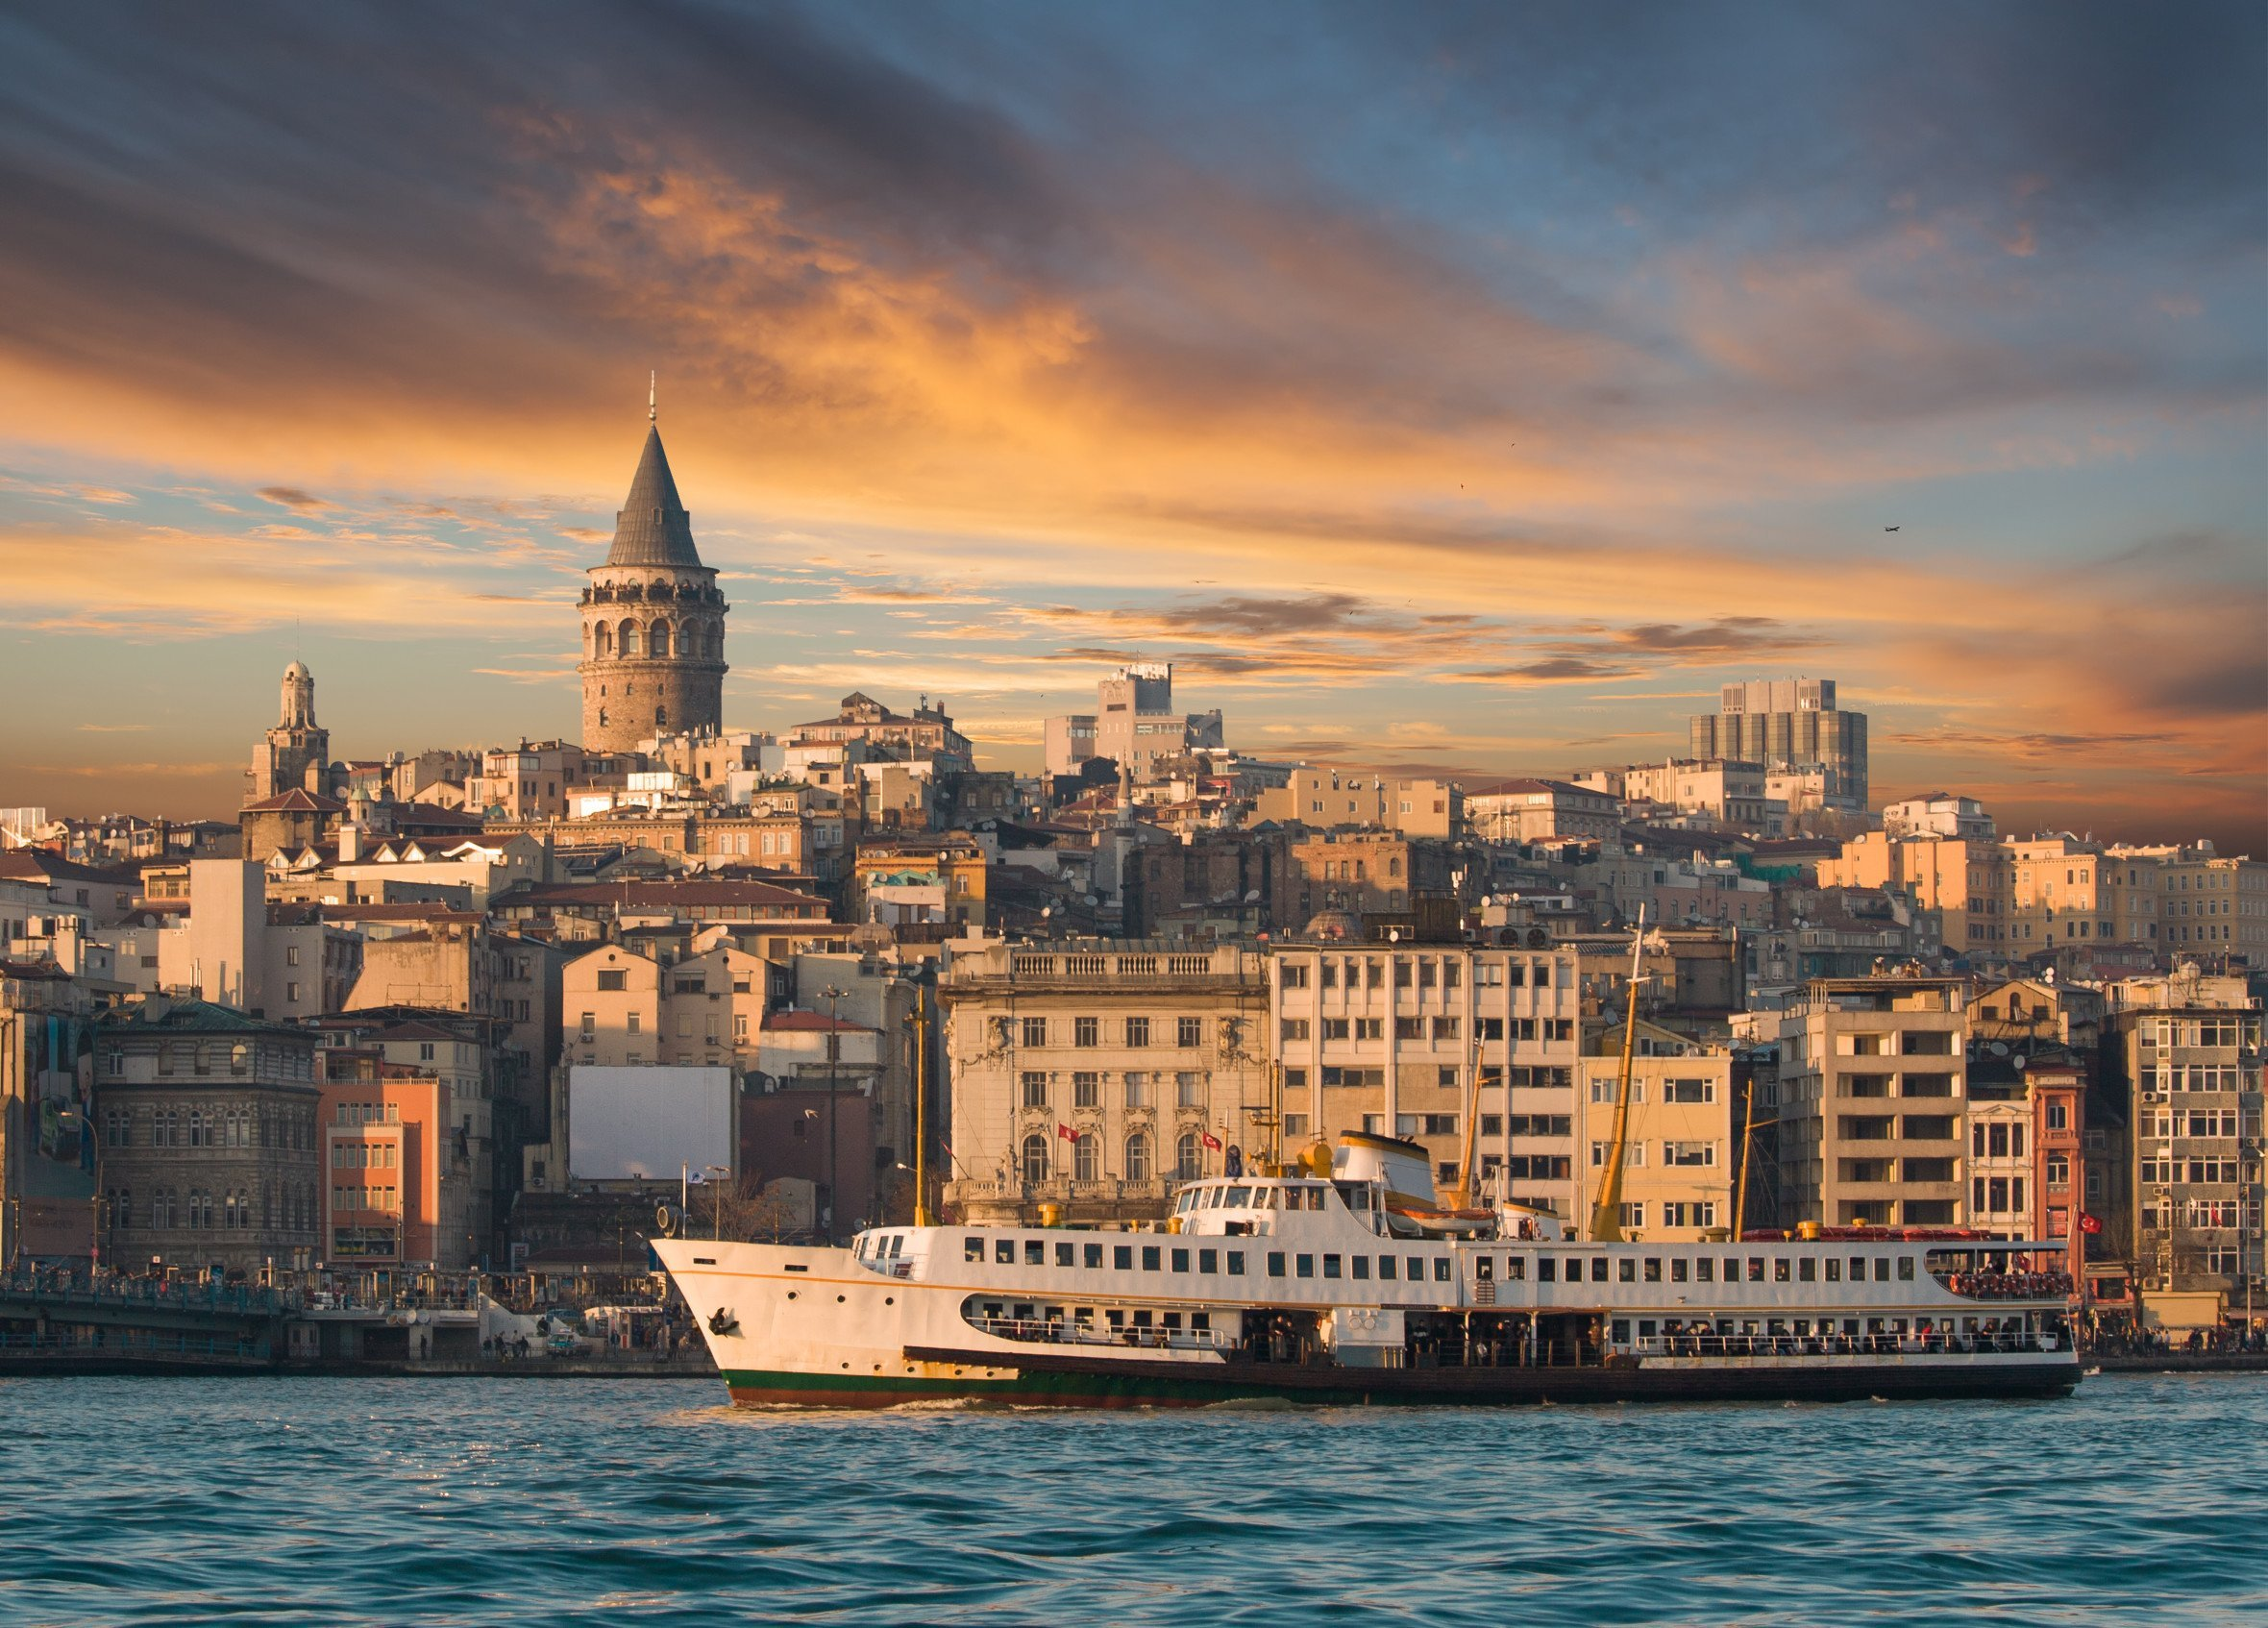 Istanbul Turkey The Black Book by Orhan Pamuk